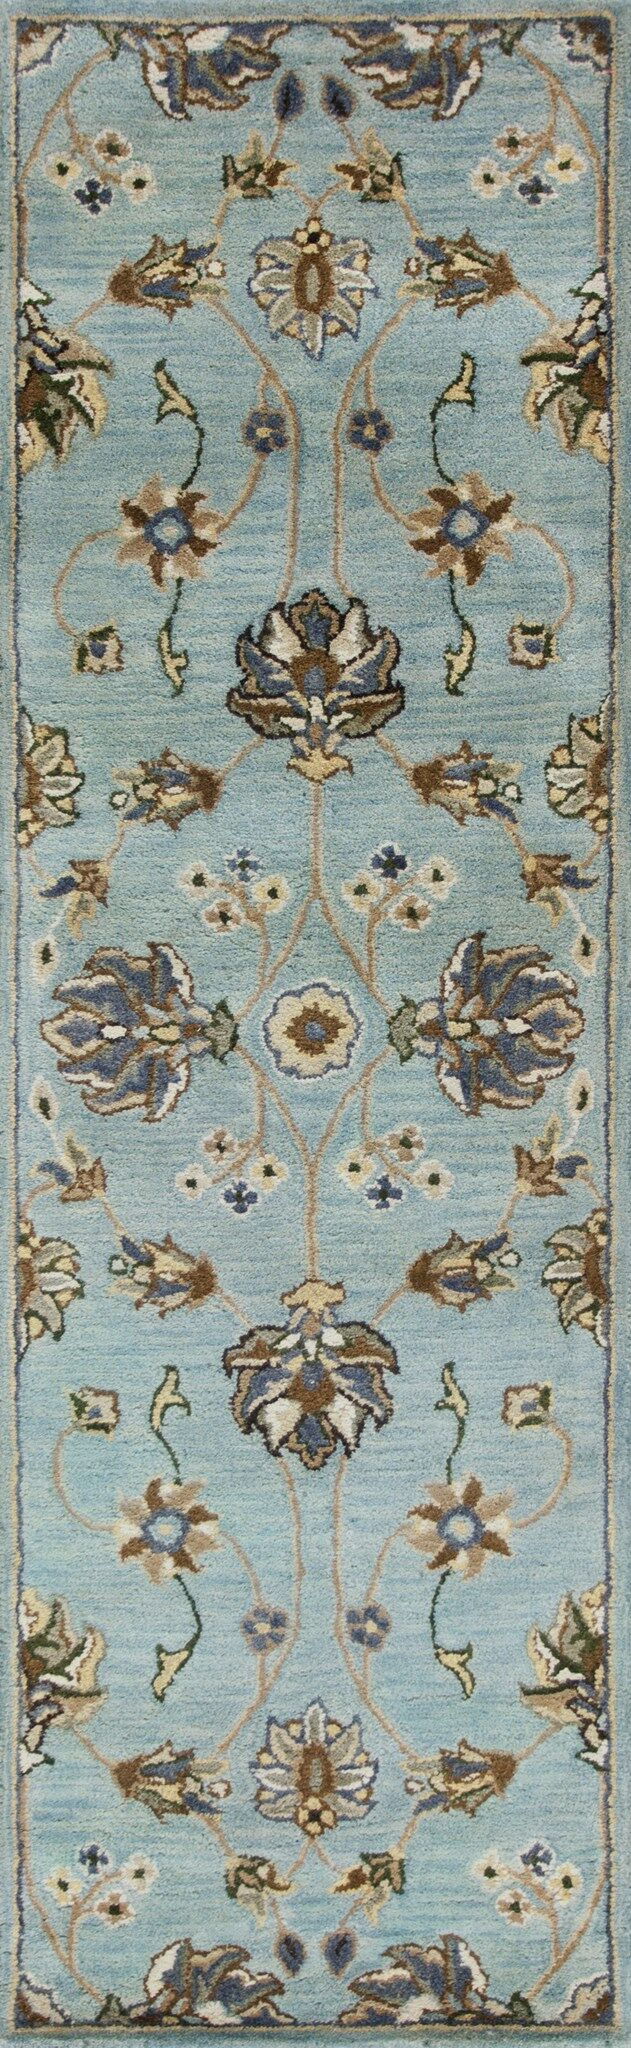 Breckler Hand-Tufted Blue Area Rug Rug Size: Runner 2'3